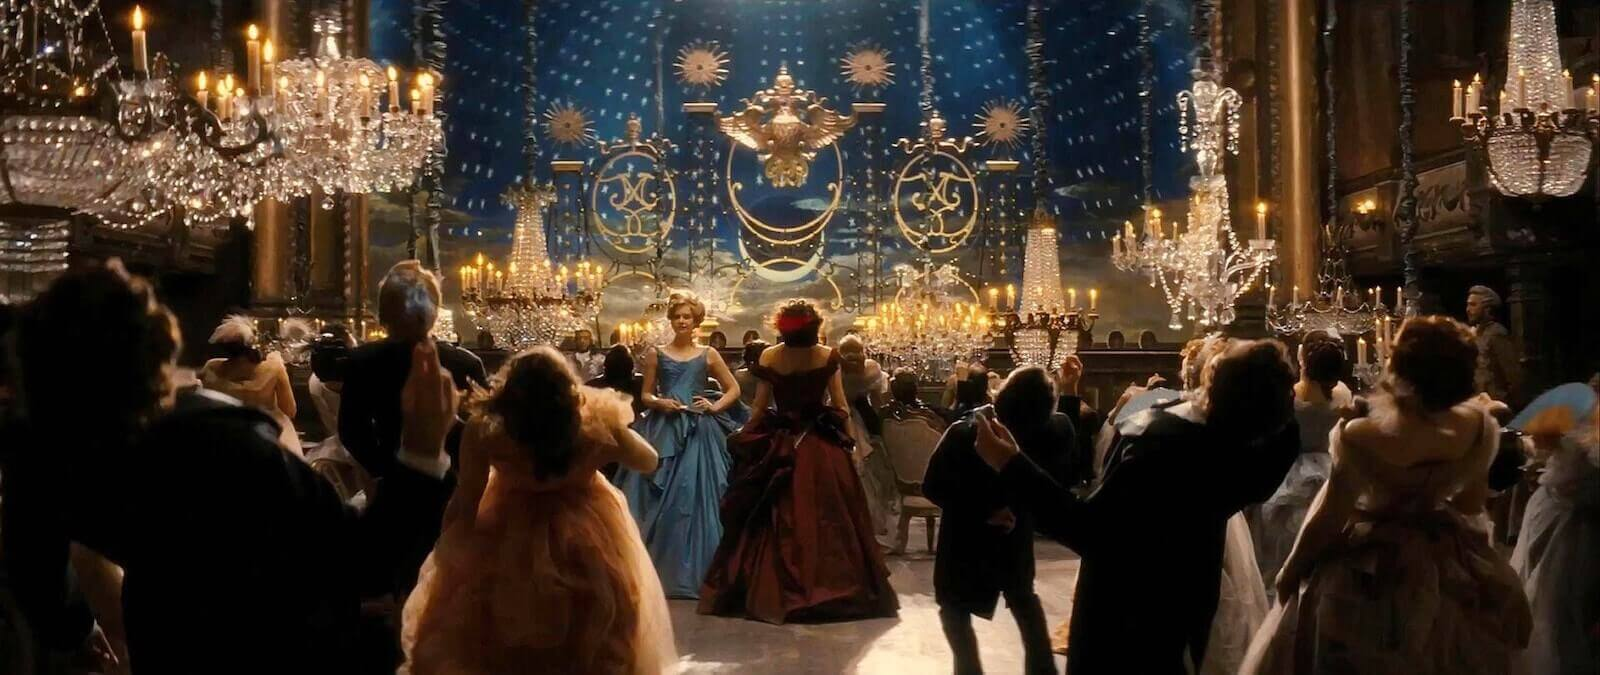 10 Production Design Tips For Filmmakers on a budget - Anna Karenina Set Design - Sarah Greenwood